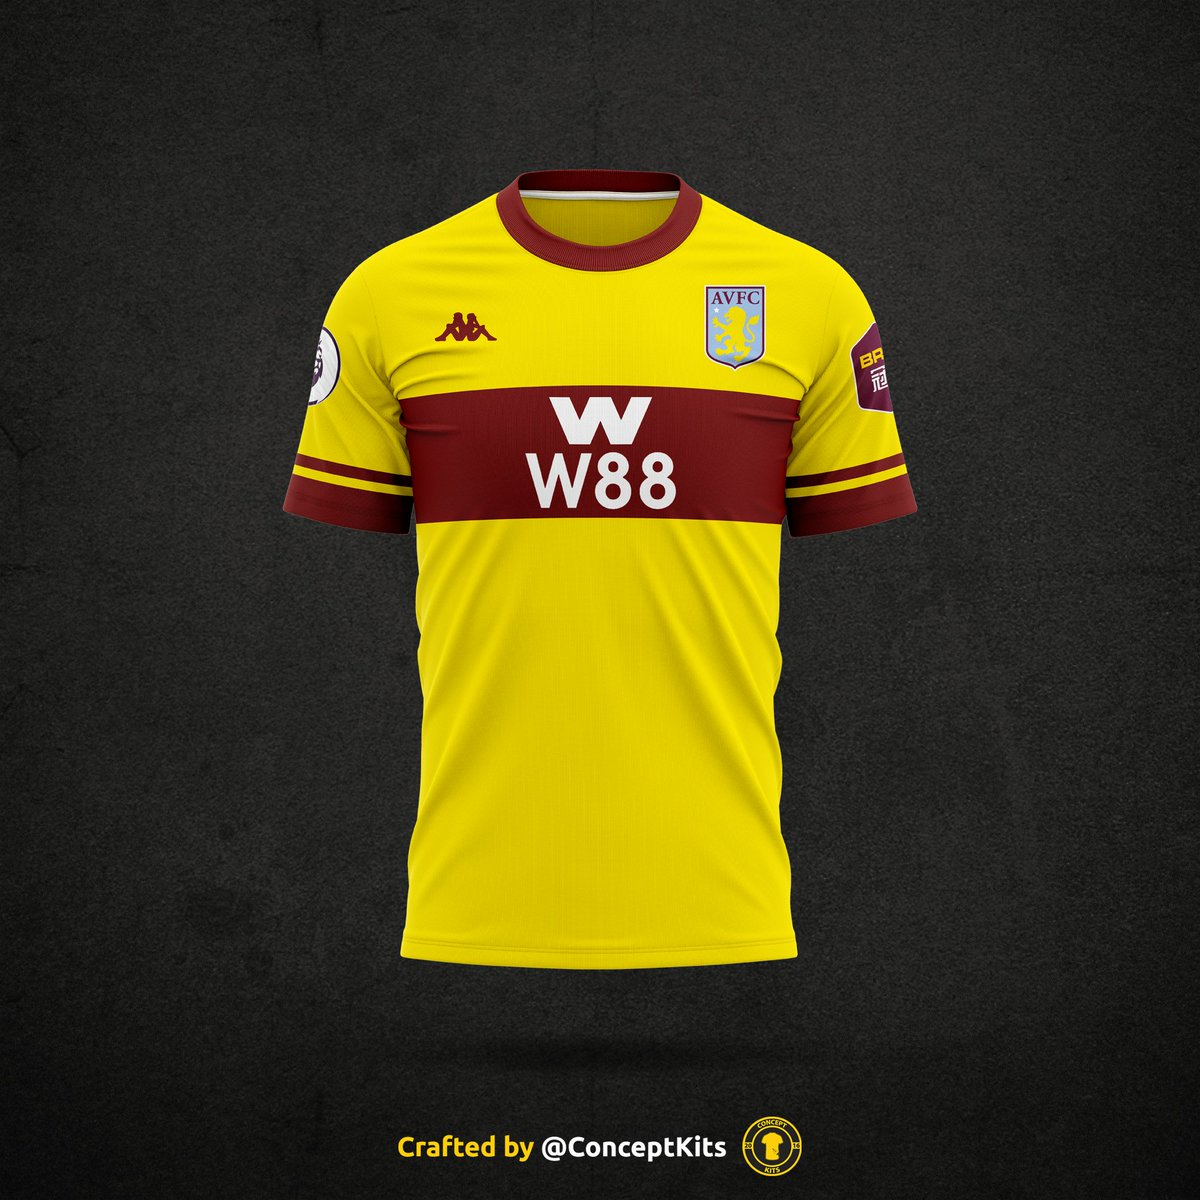 Concept Kits On Twitter Jspdavfc Here Is Your Aston Villa Football Club Away Kit Concept For The 2020 21 Season Avfc